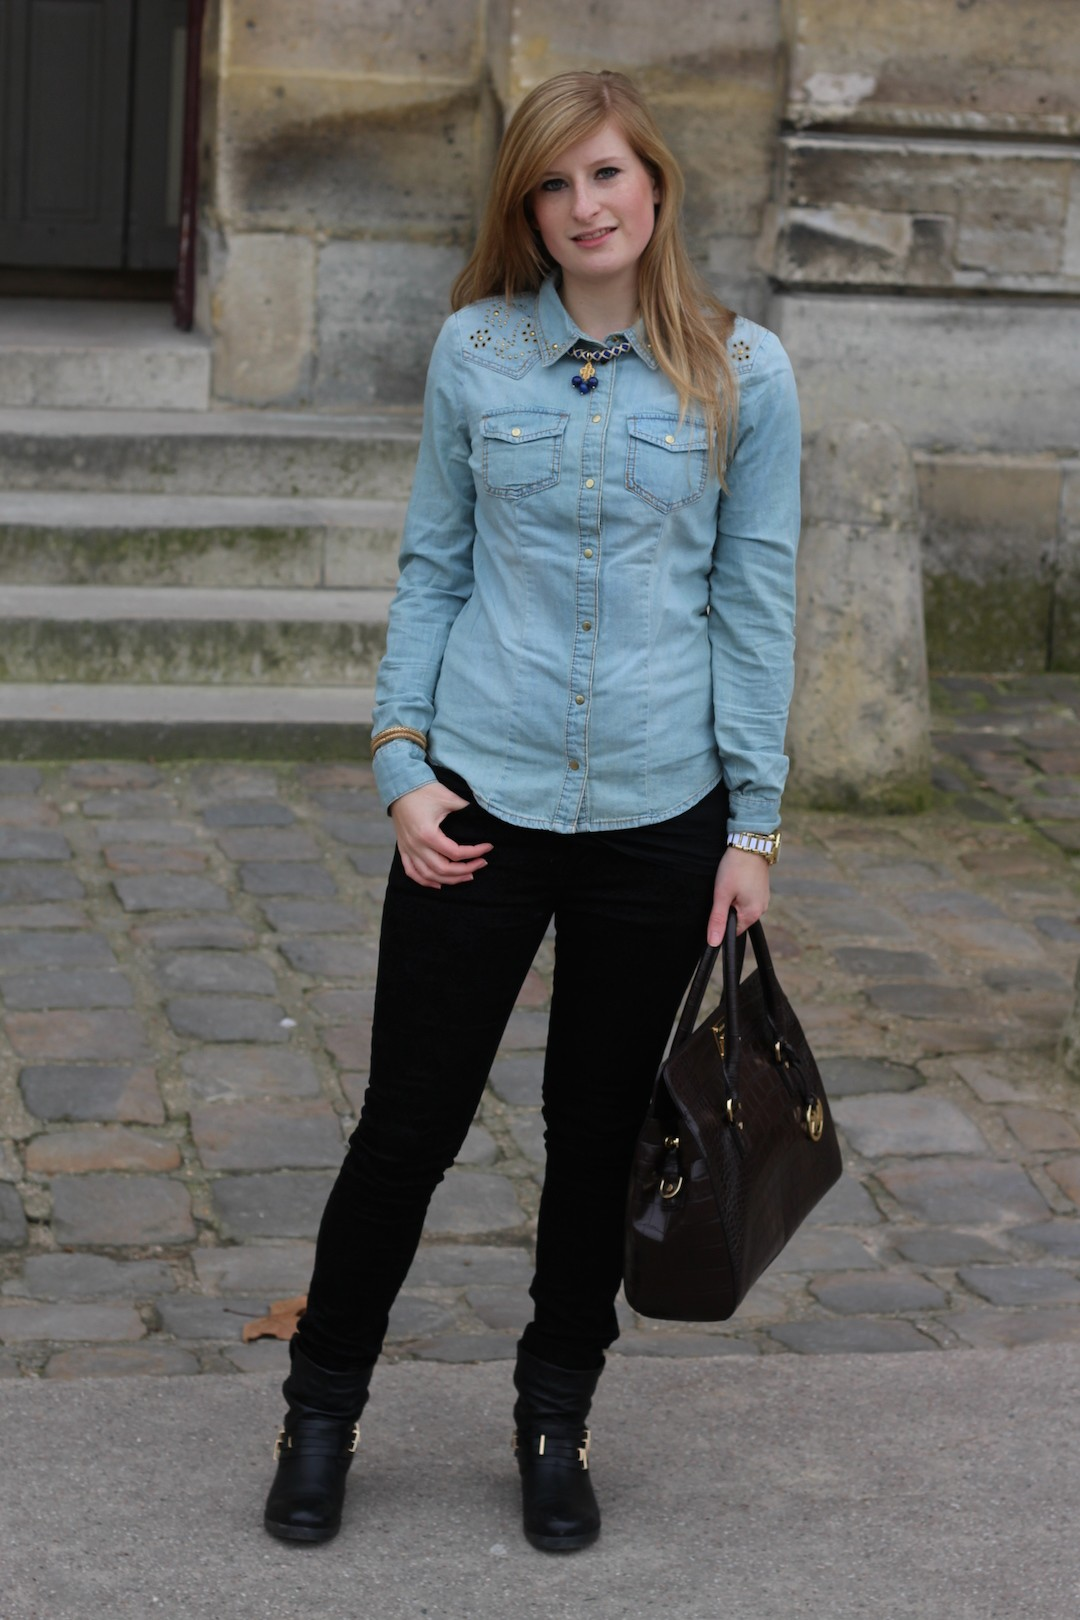 jeans blouse in Paris